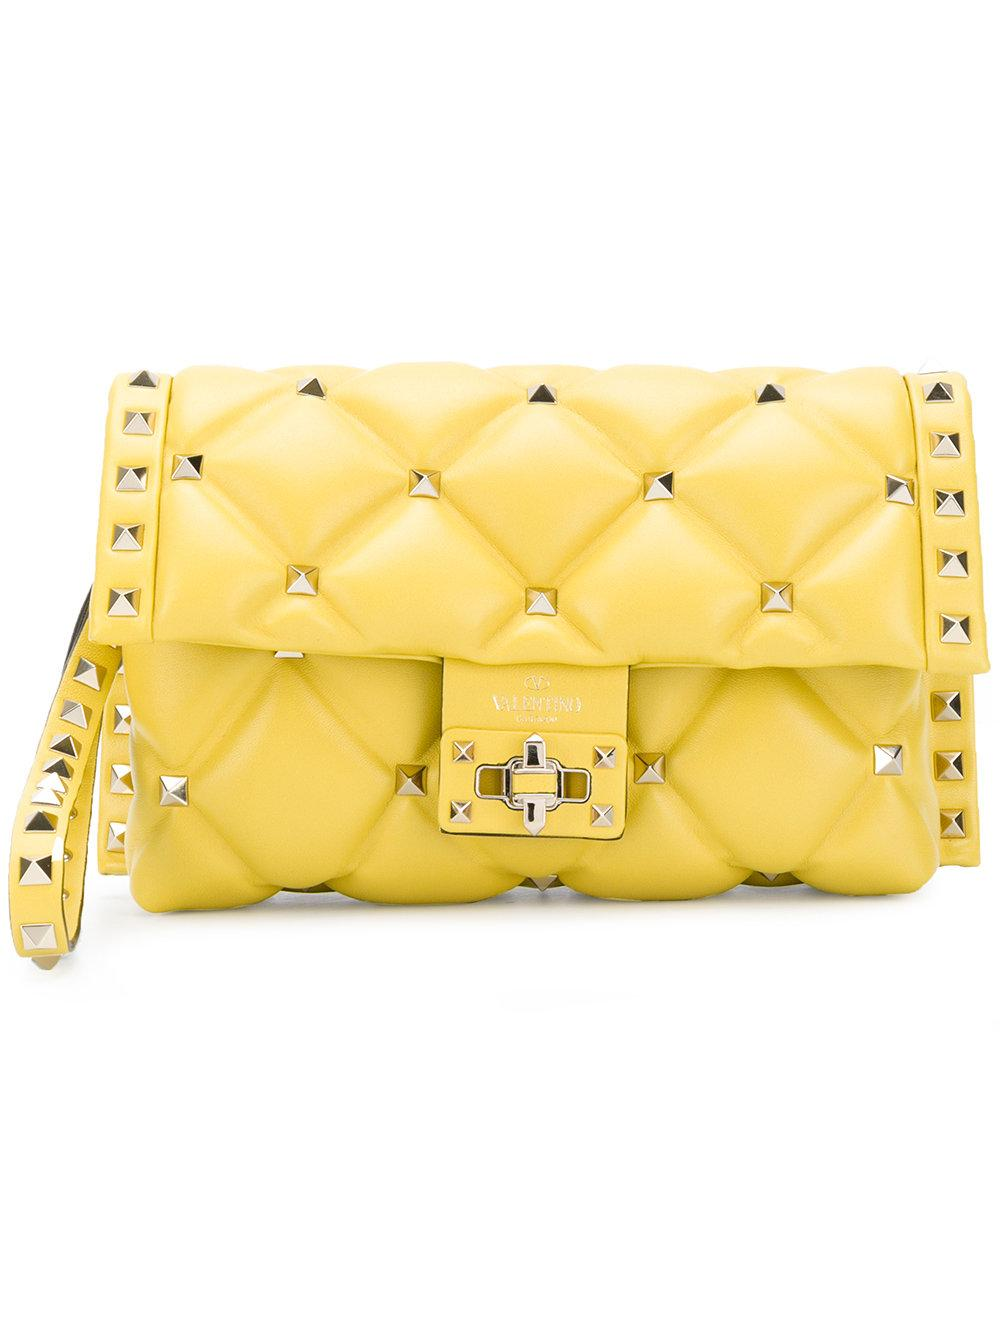 183889d005 Valentino Garavani Rockstud Clutch Bag In Yellow & Orange | ModeSens